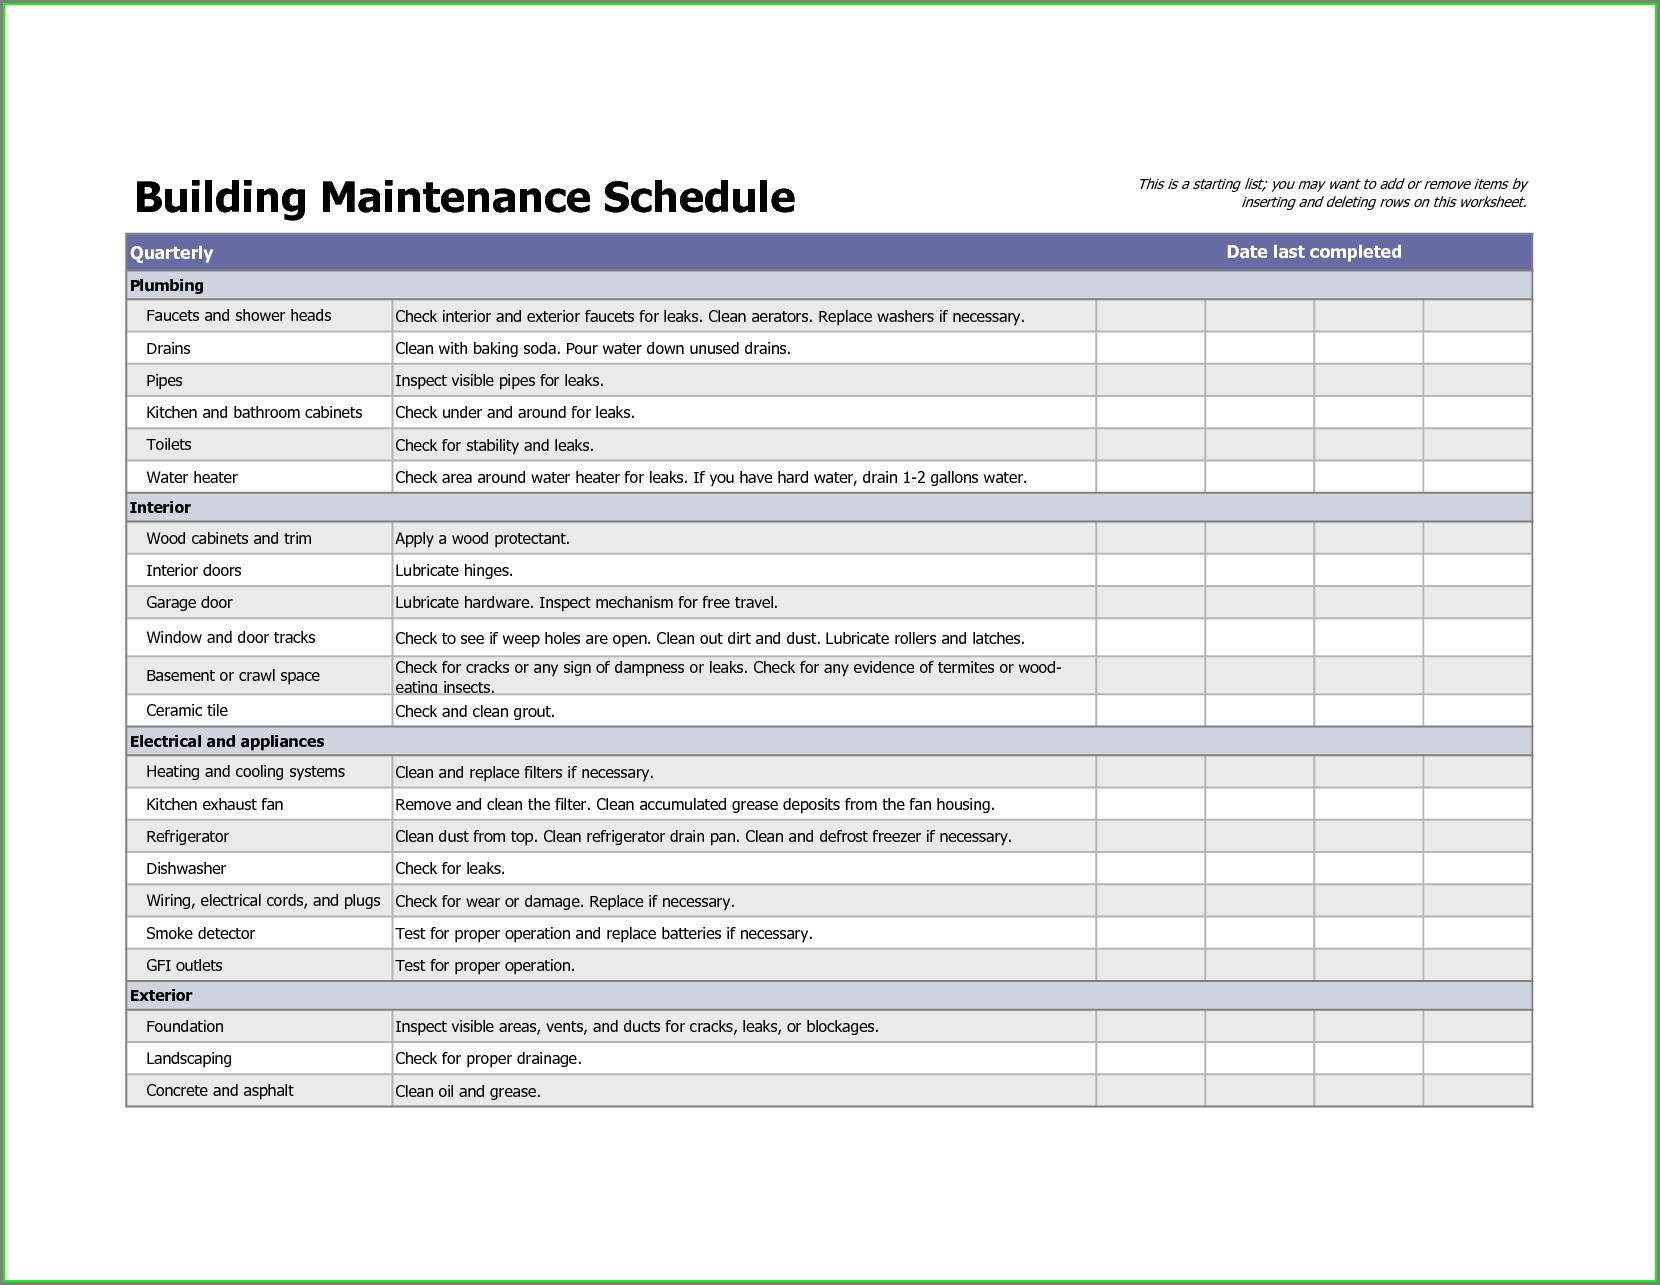 Preventive Maintenance Schedule Excel Template